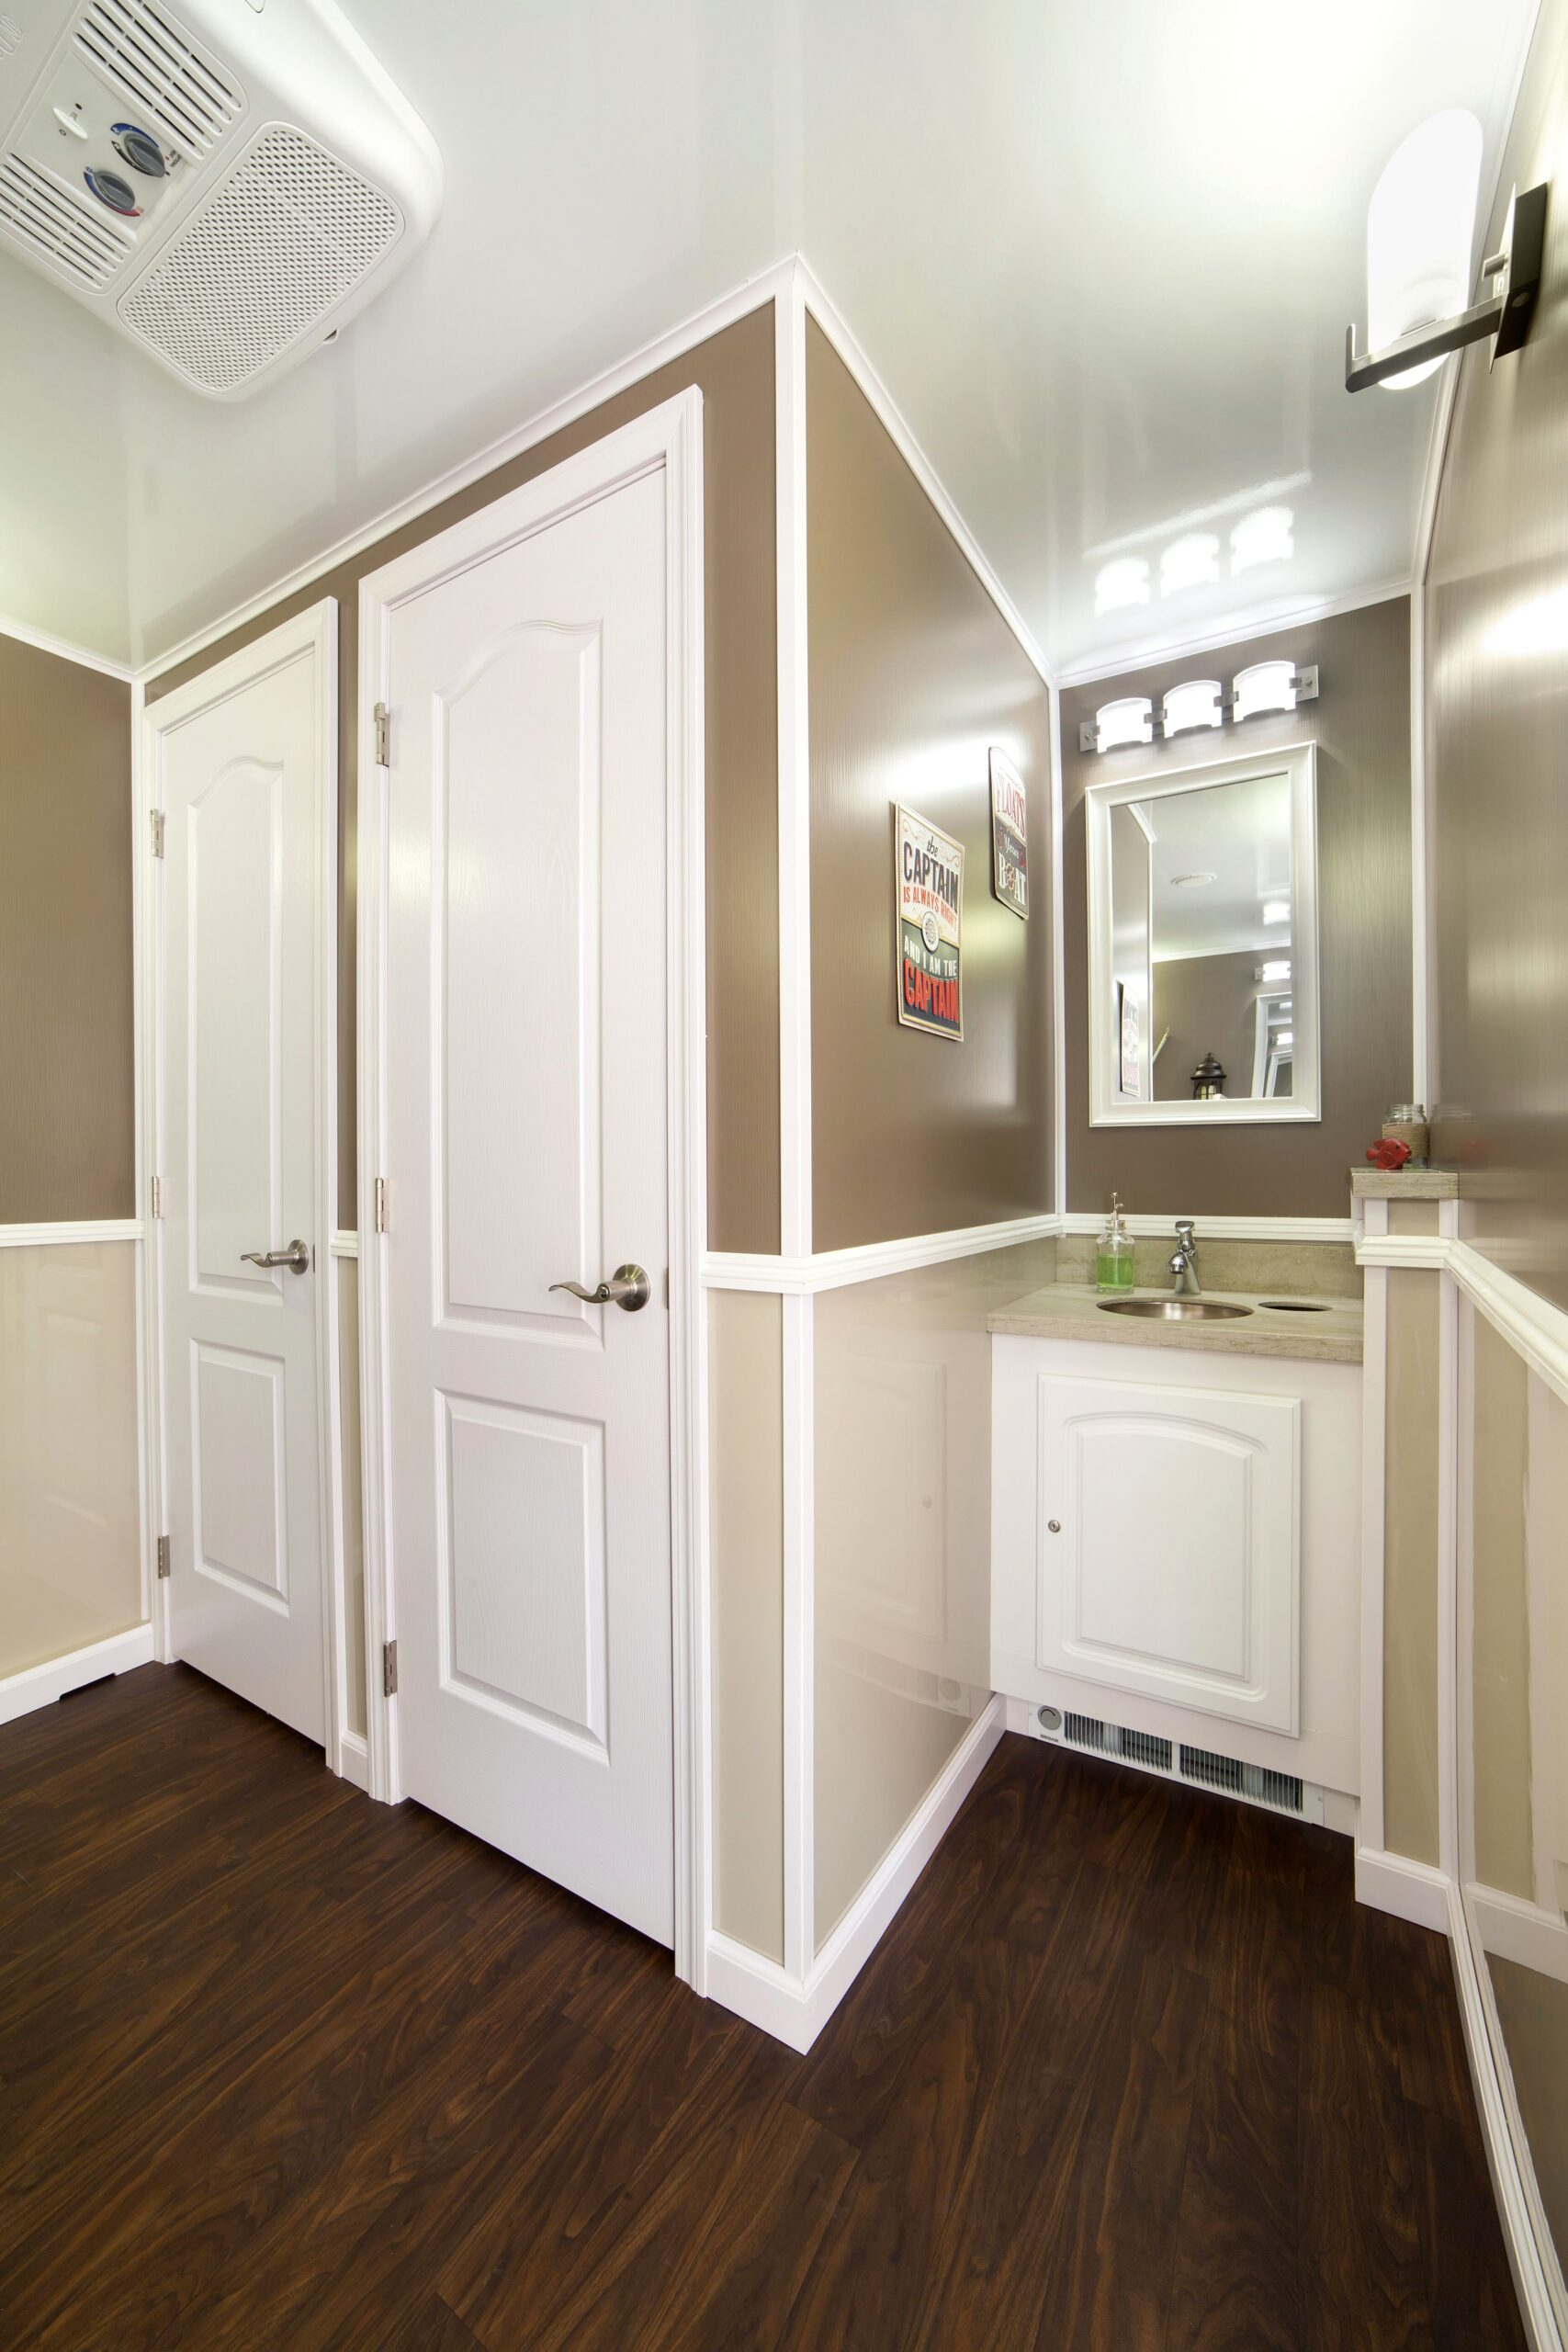 Restroom interior with two closed doors and a sink with mirror